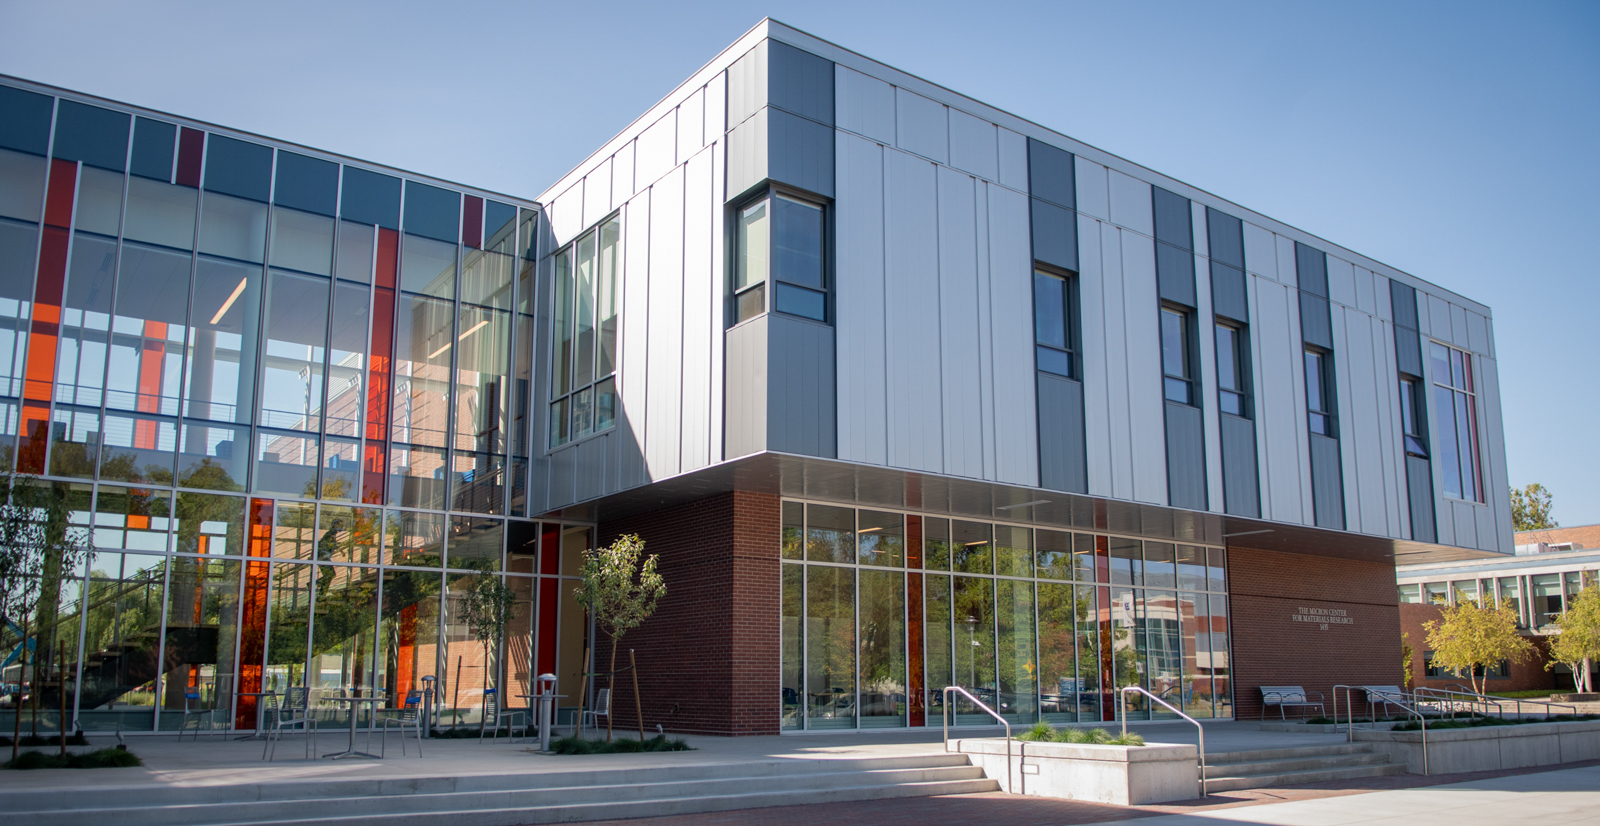 Another outside view of the Materials Research building